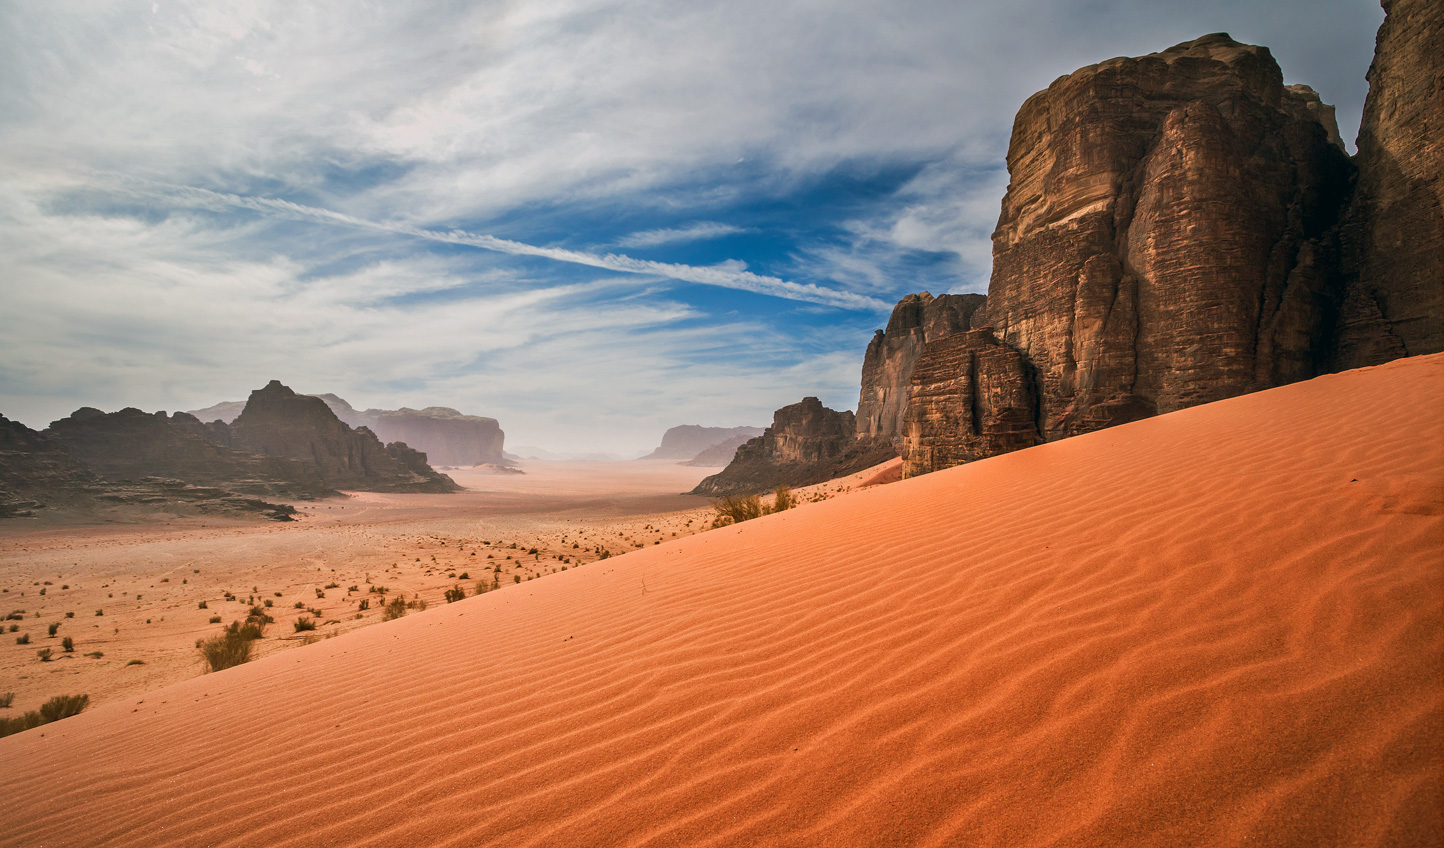 Tread the scorched sands of Wadi Rum